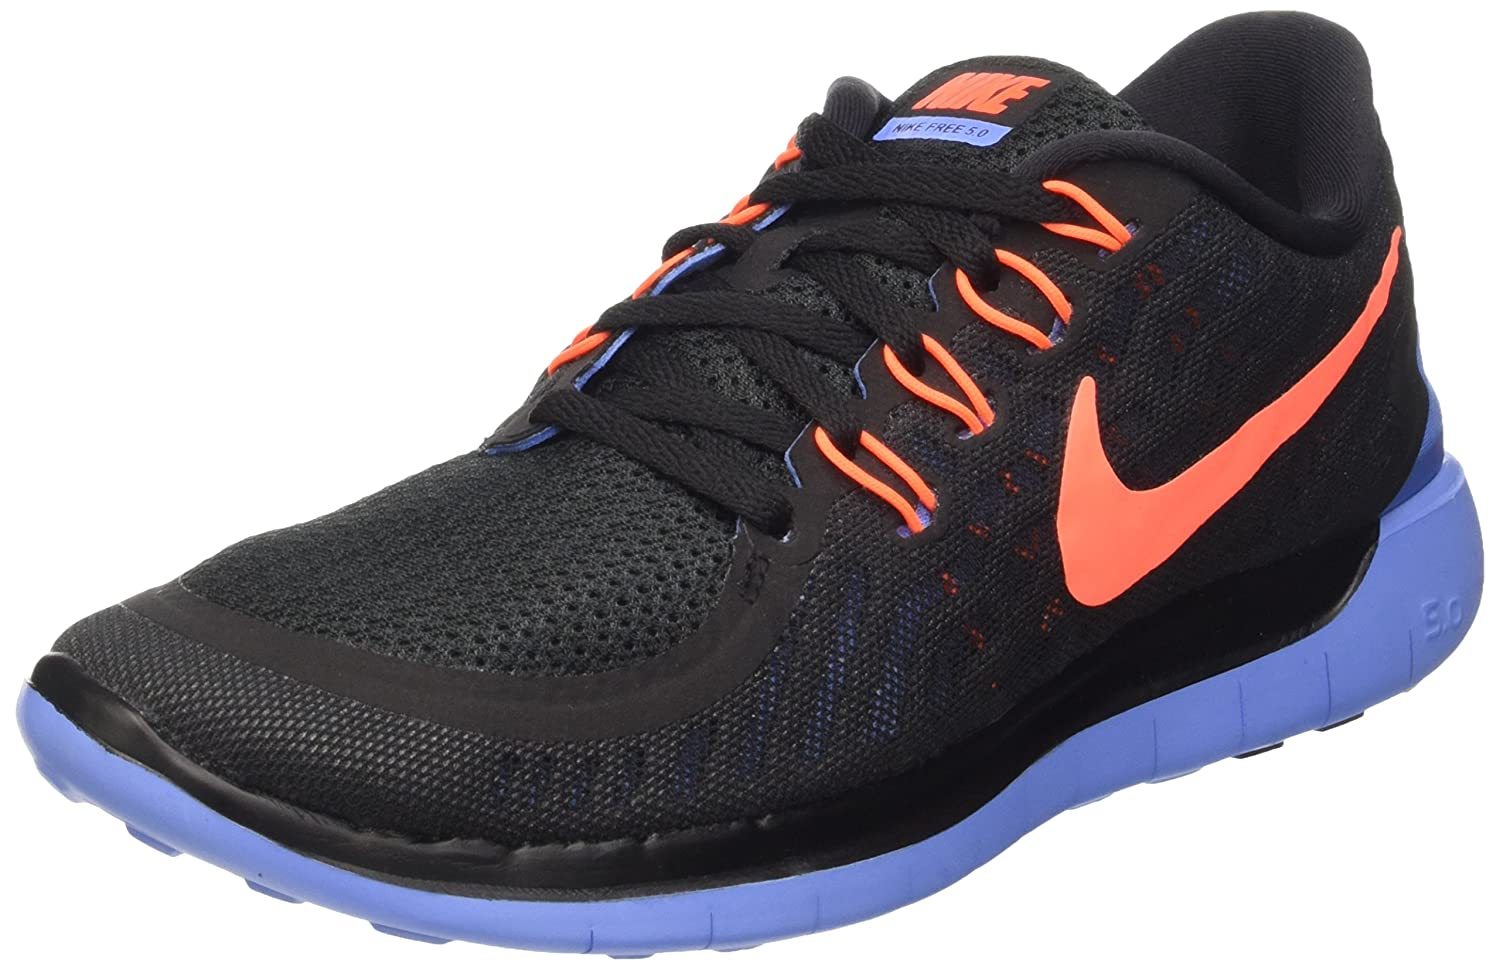 low priced 3655c b549a low cost amazon nike womens free 5.0 running shoes black blue hyper orange  size 9 m